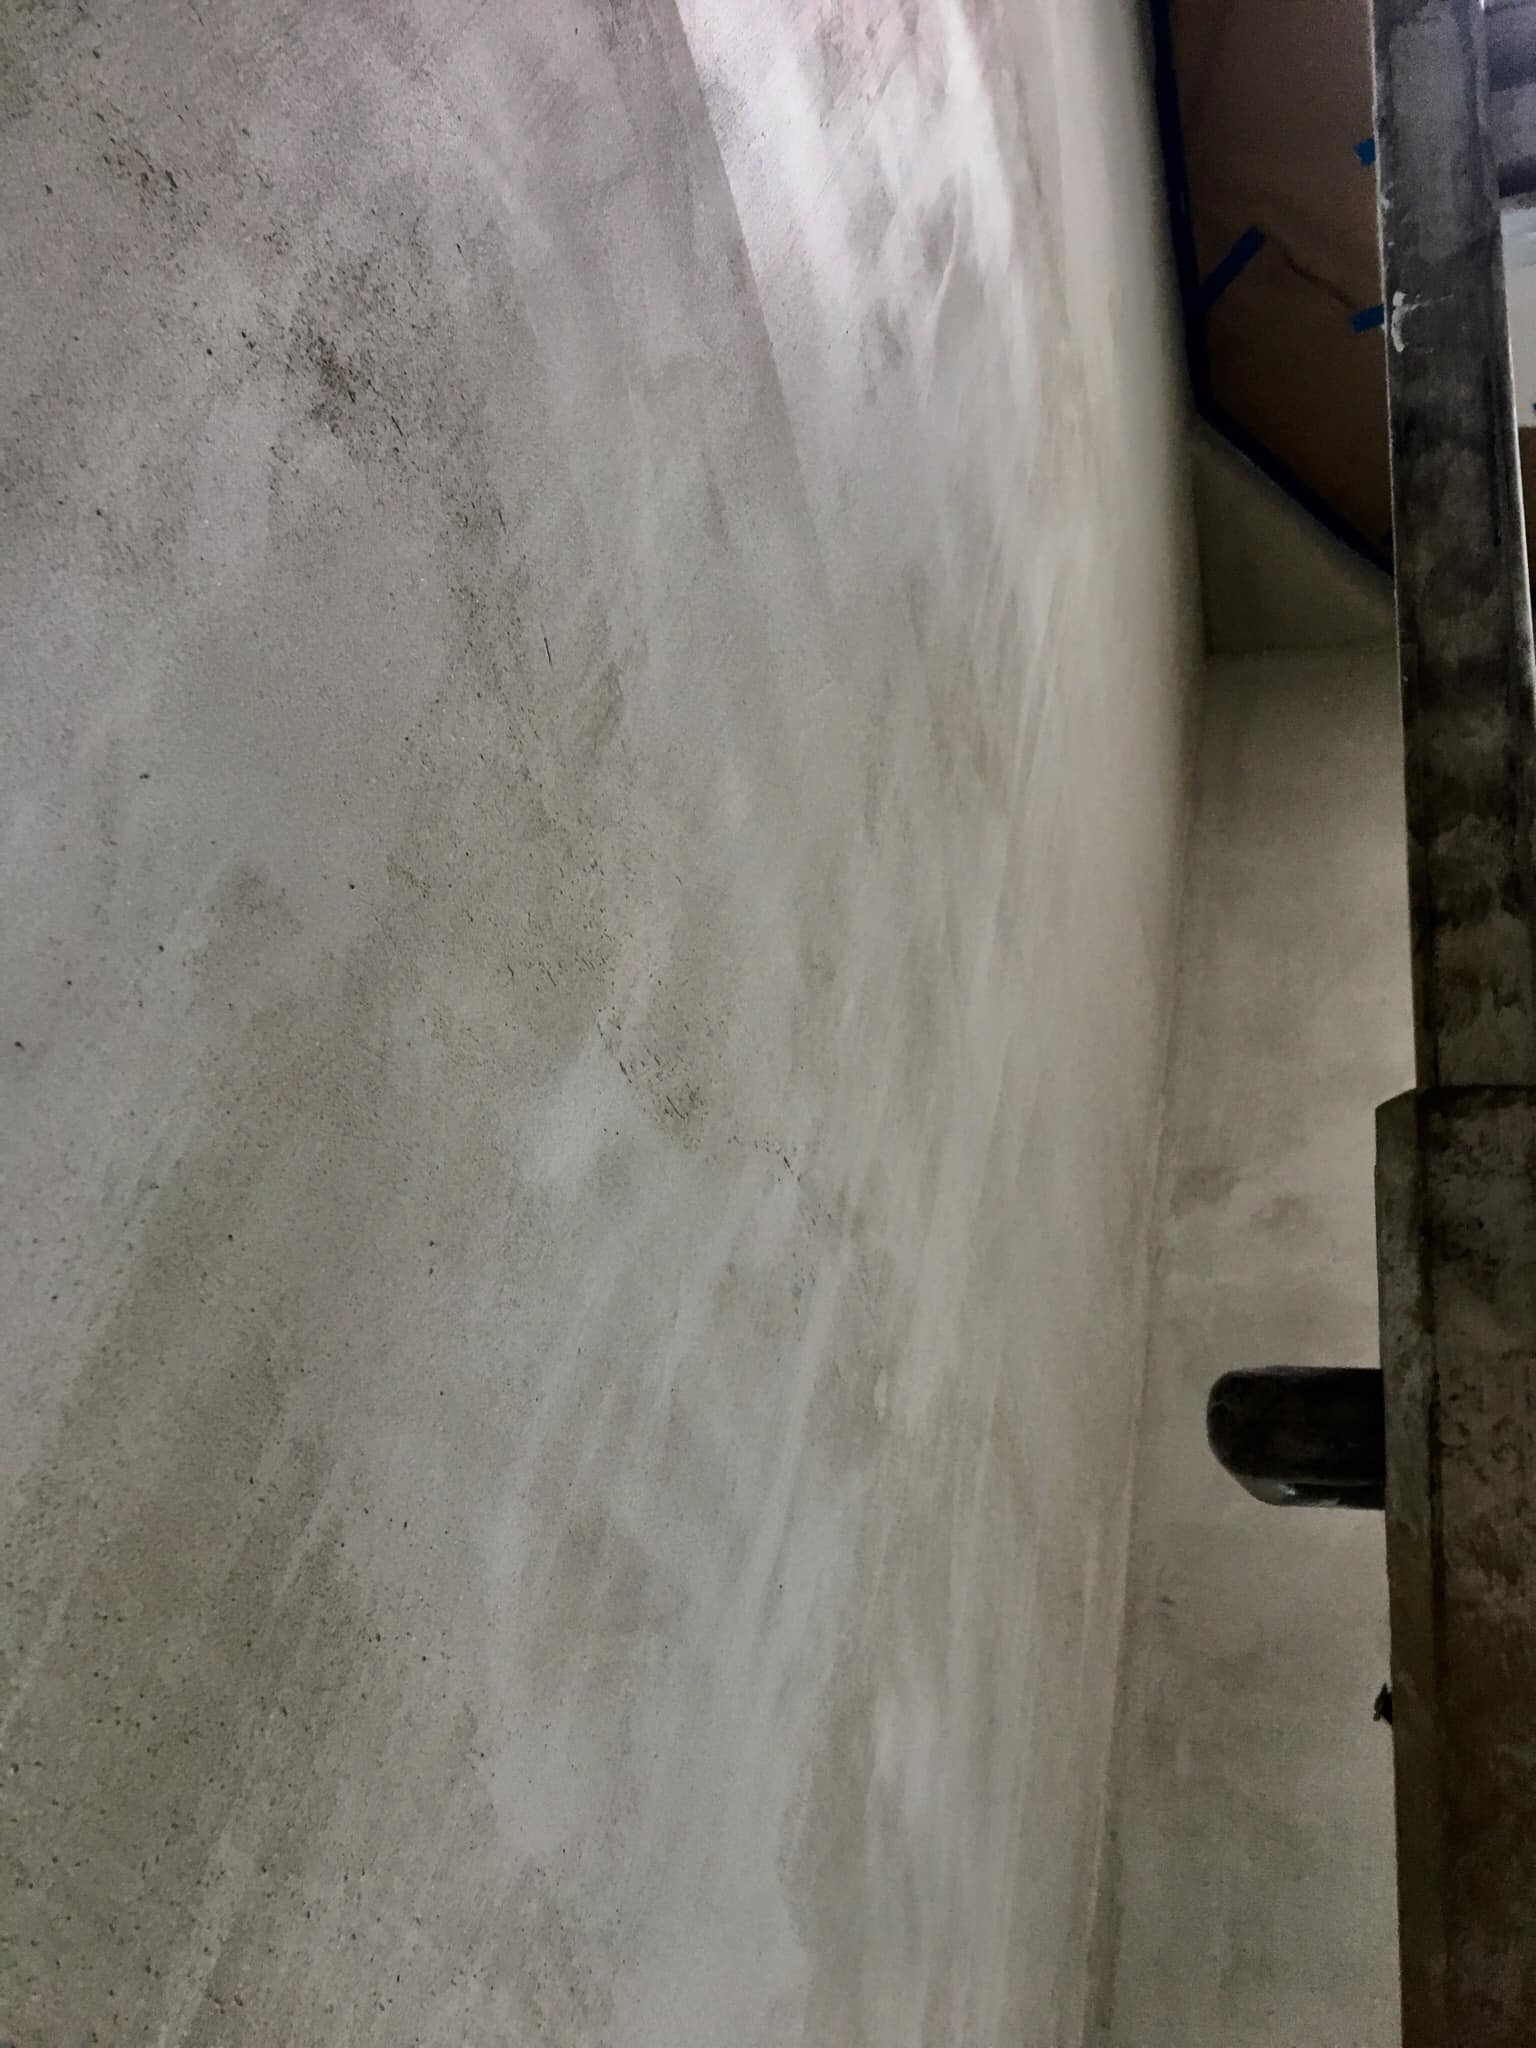 Cement based plaster was applied to the walls